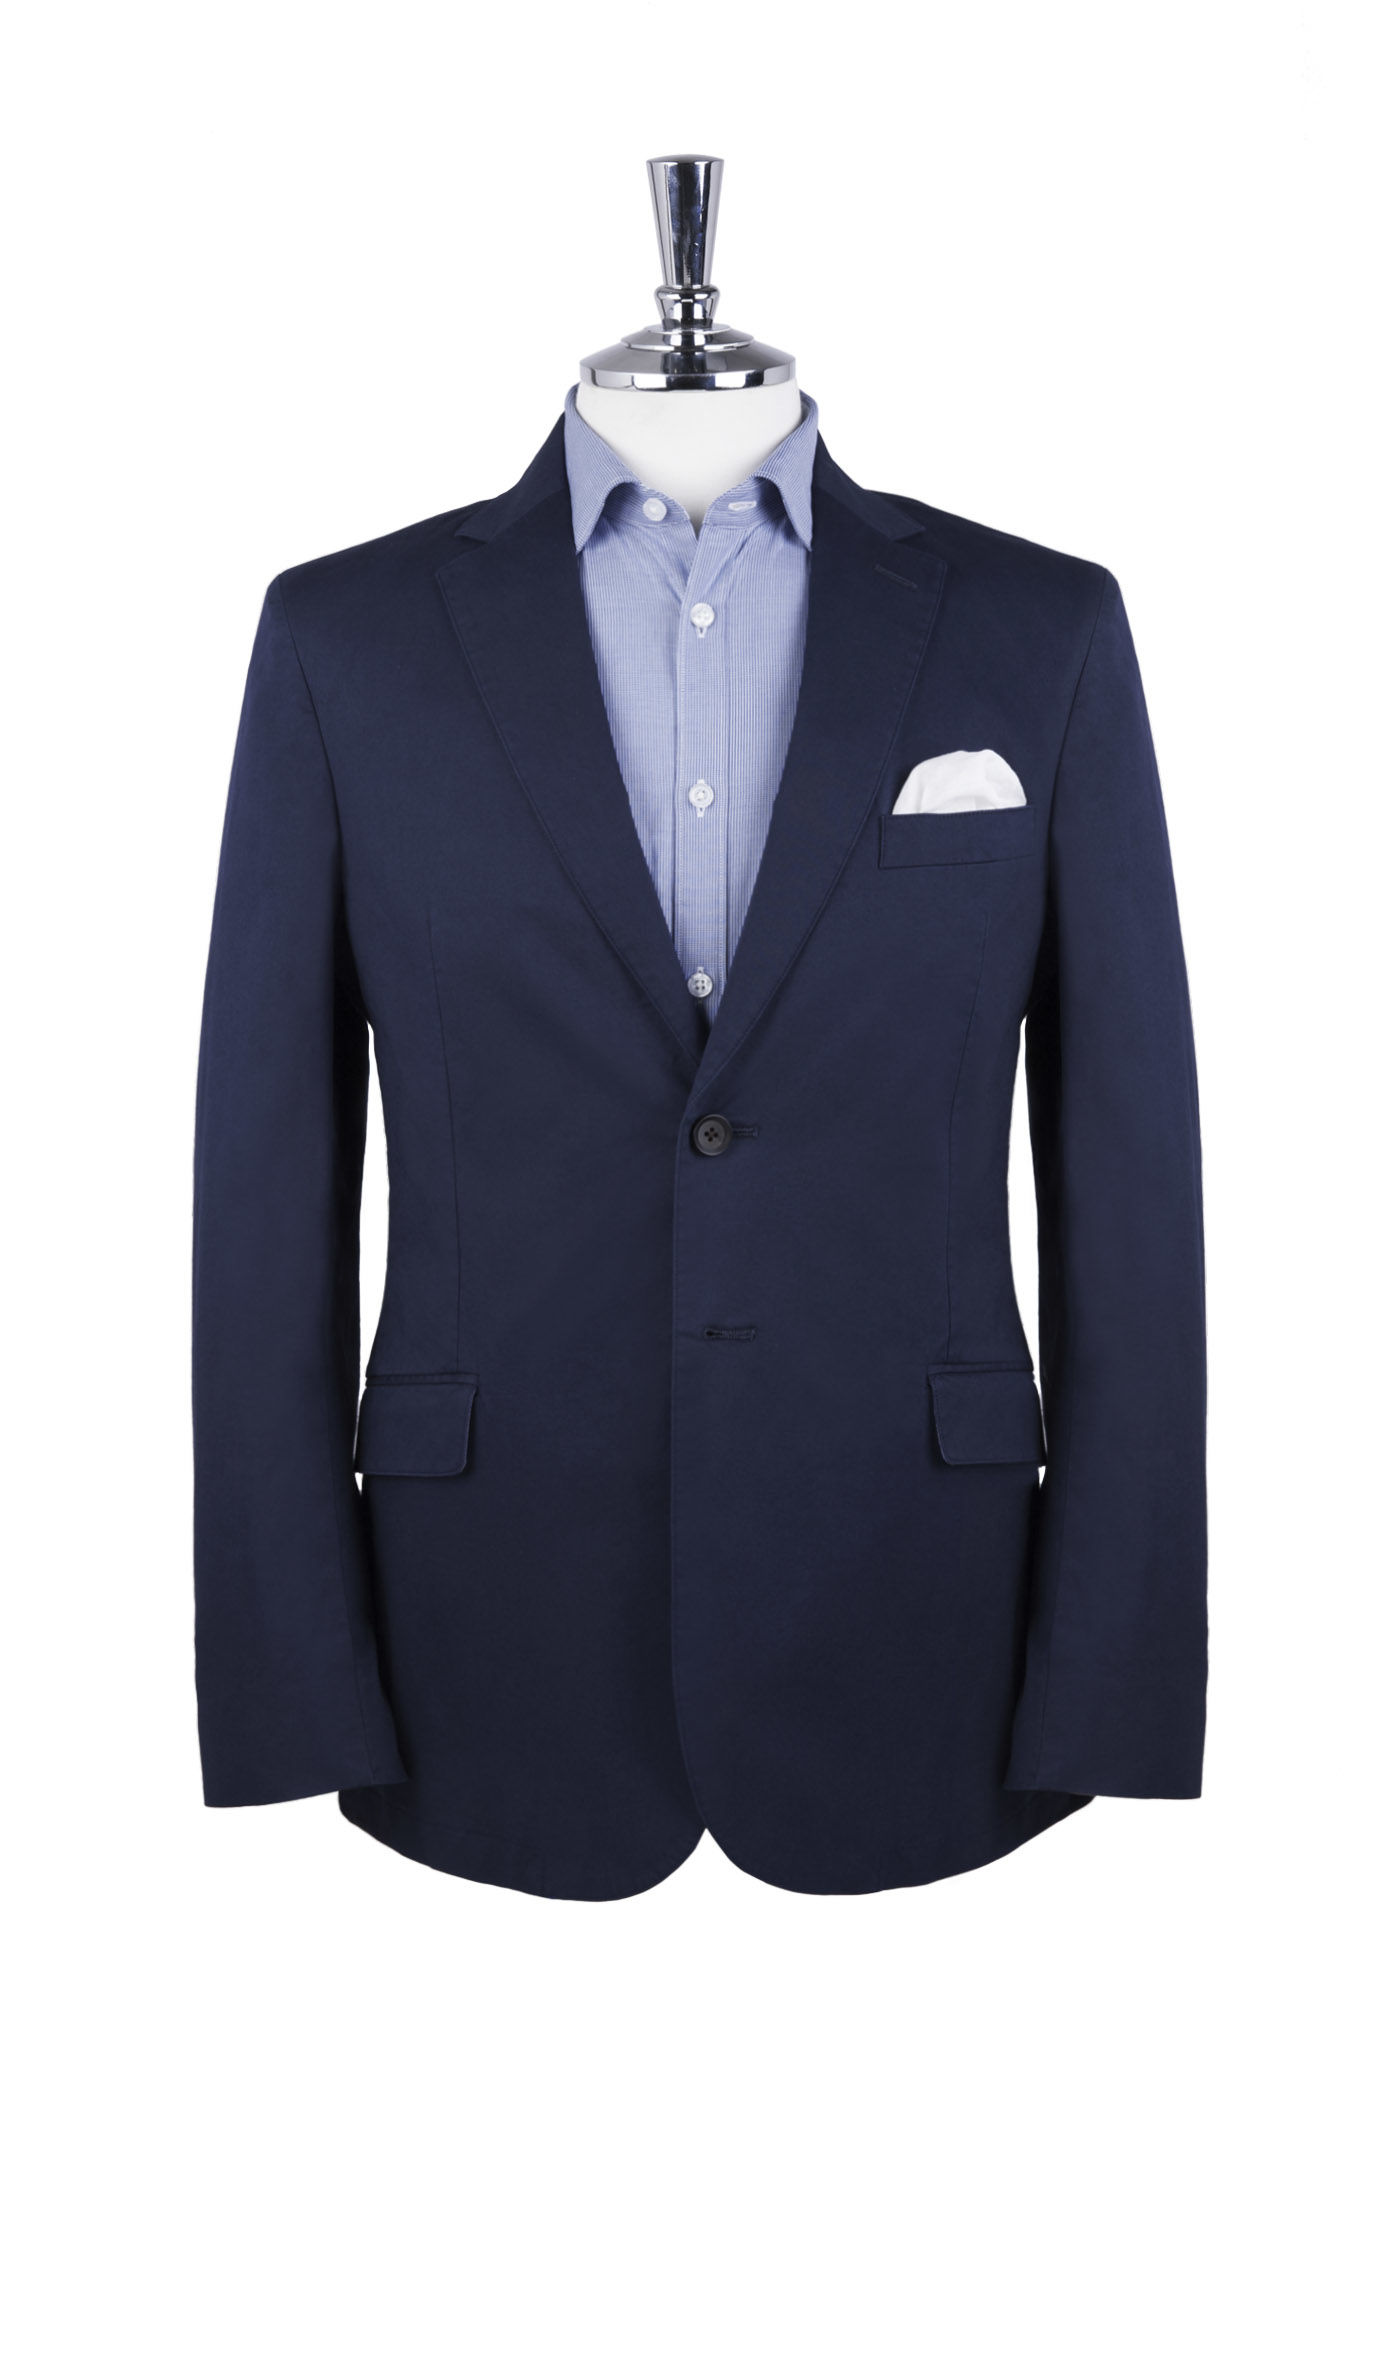 T.M.Lewin Belmont Navy Italian Stretch Cotton Jacket